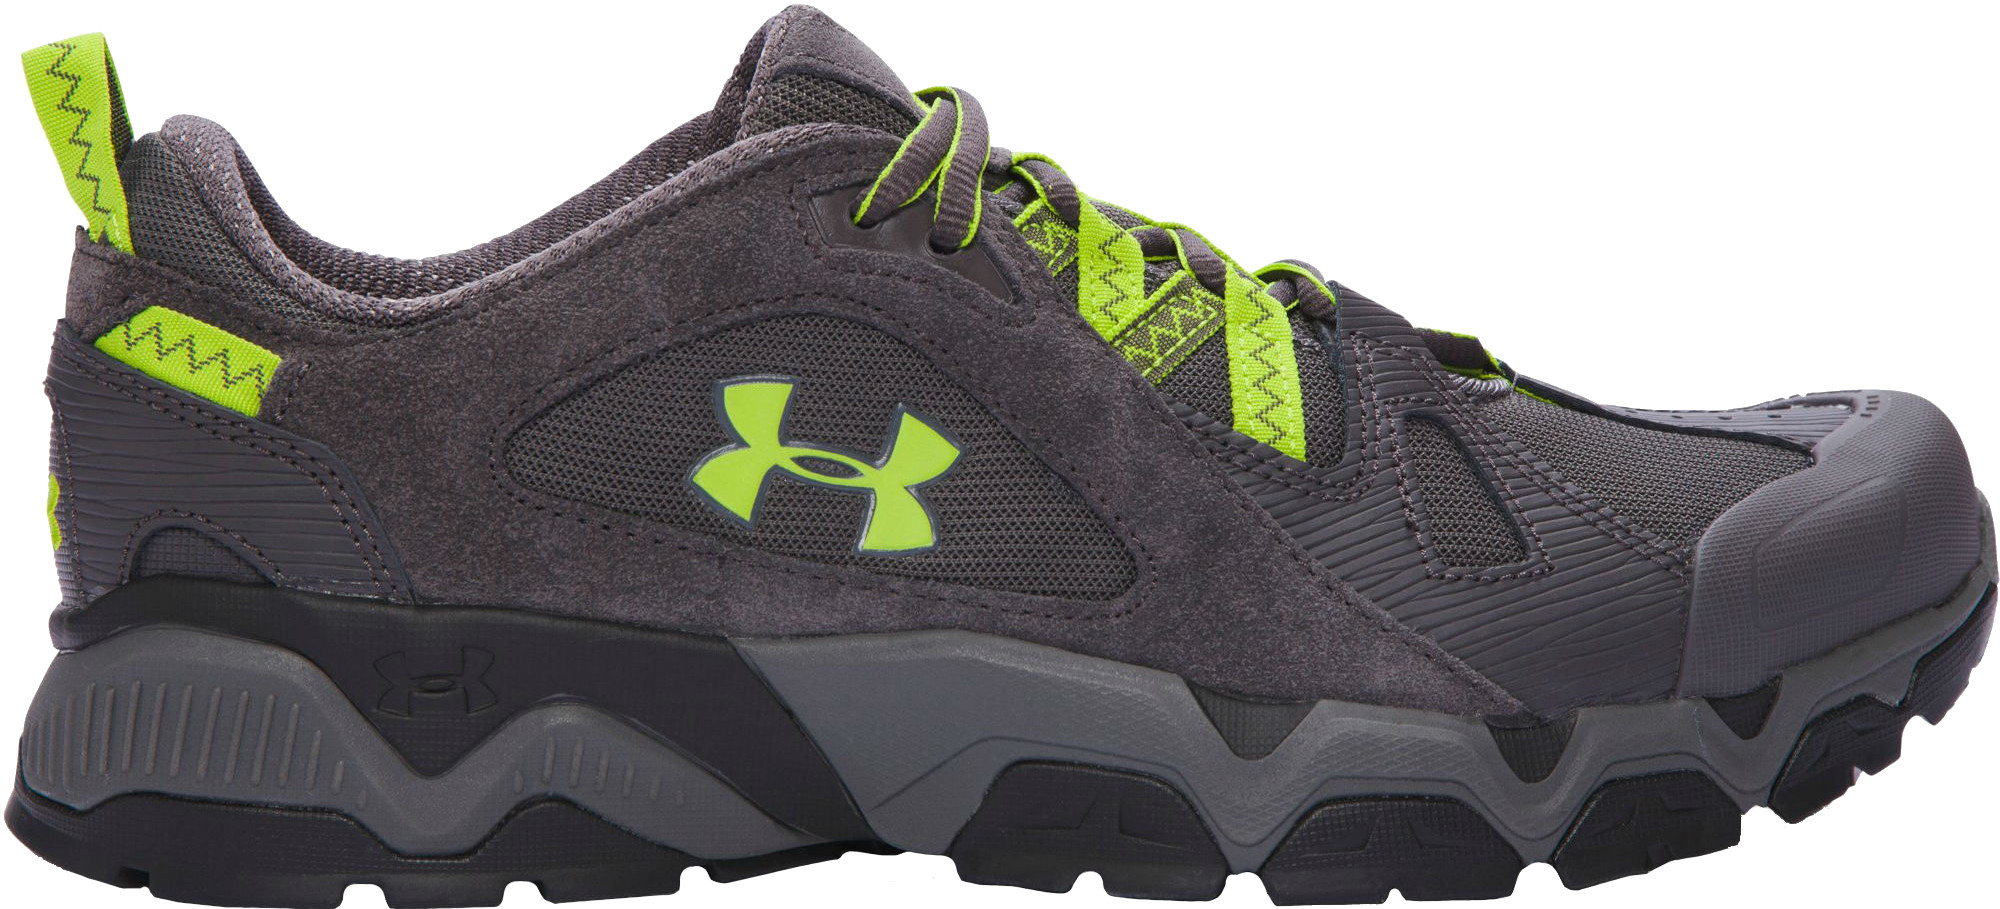 Under Armour Chetco Trail 2.0 Hiking Shoe - Men s  ee657cb92374